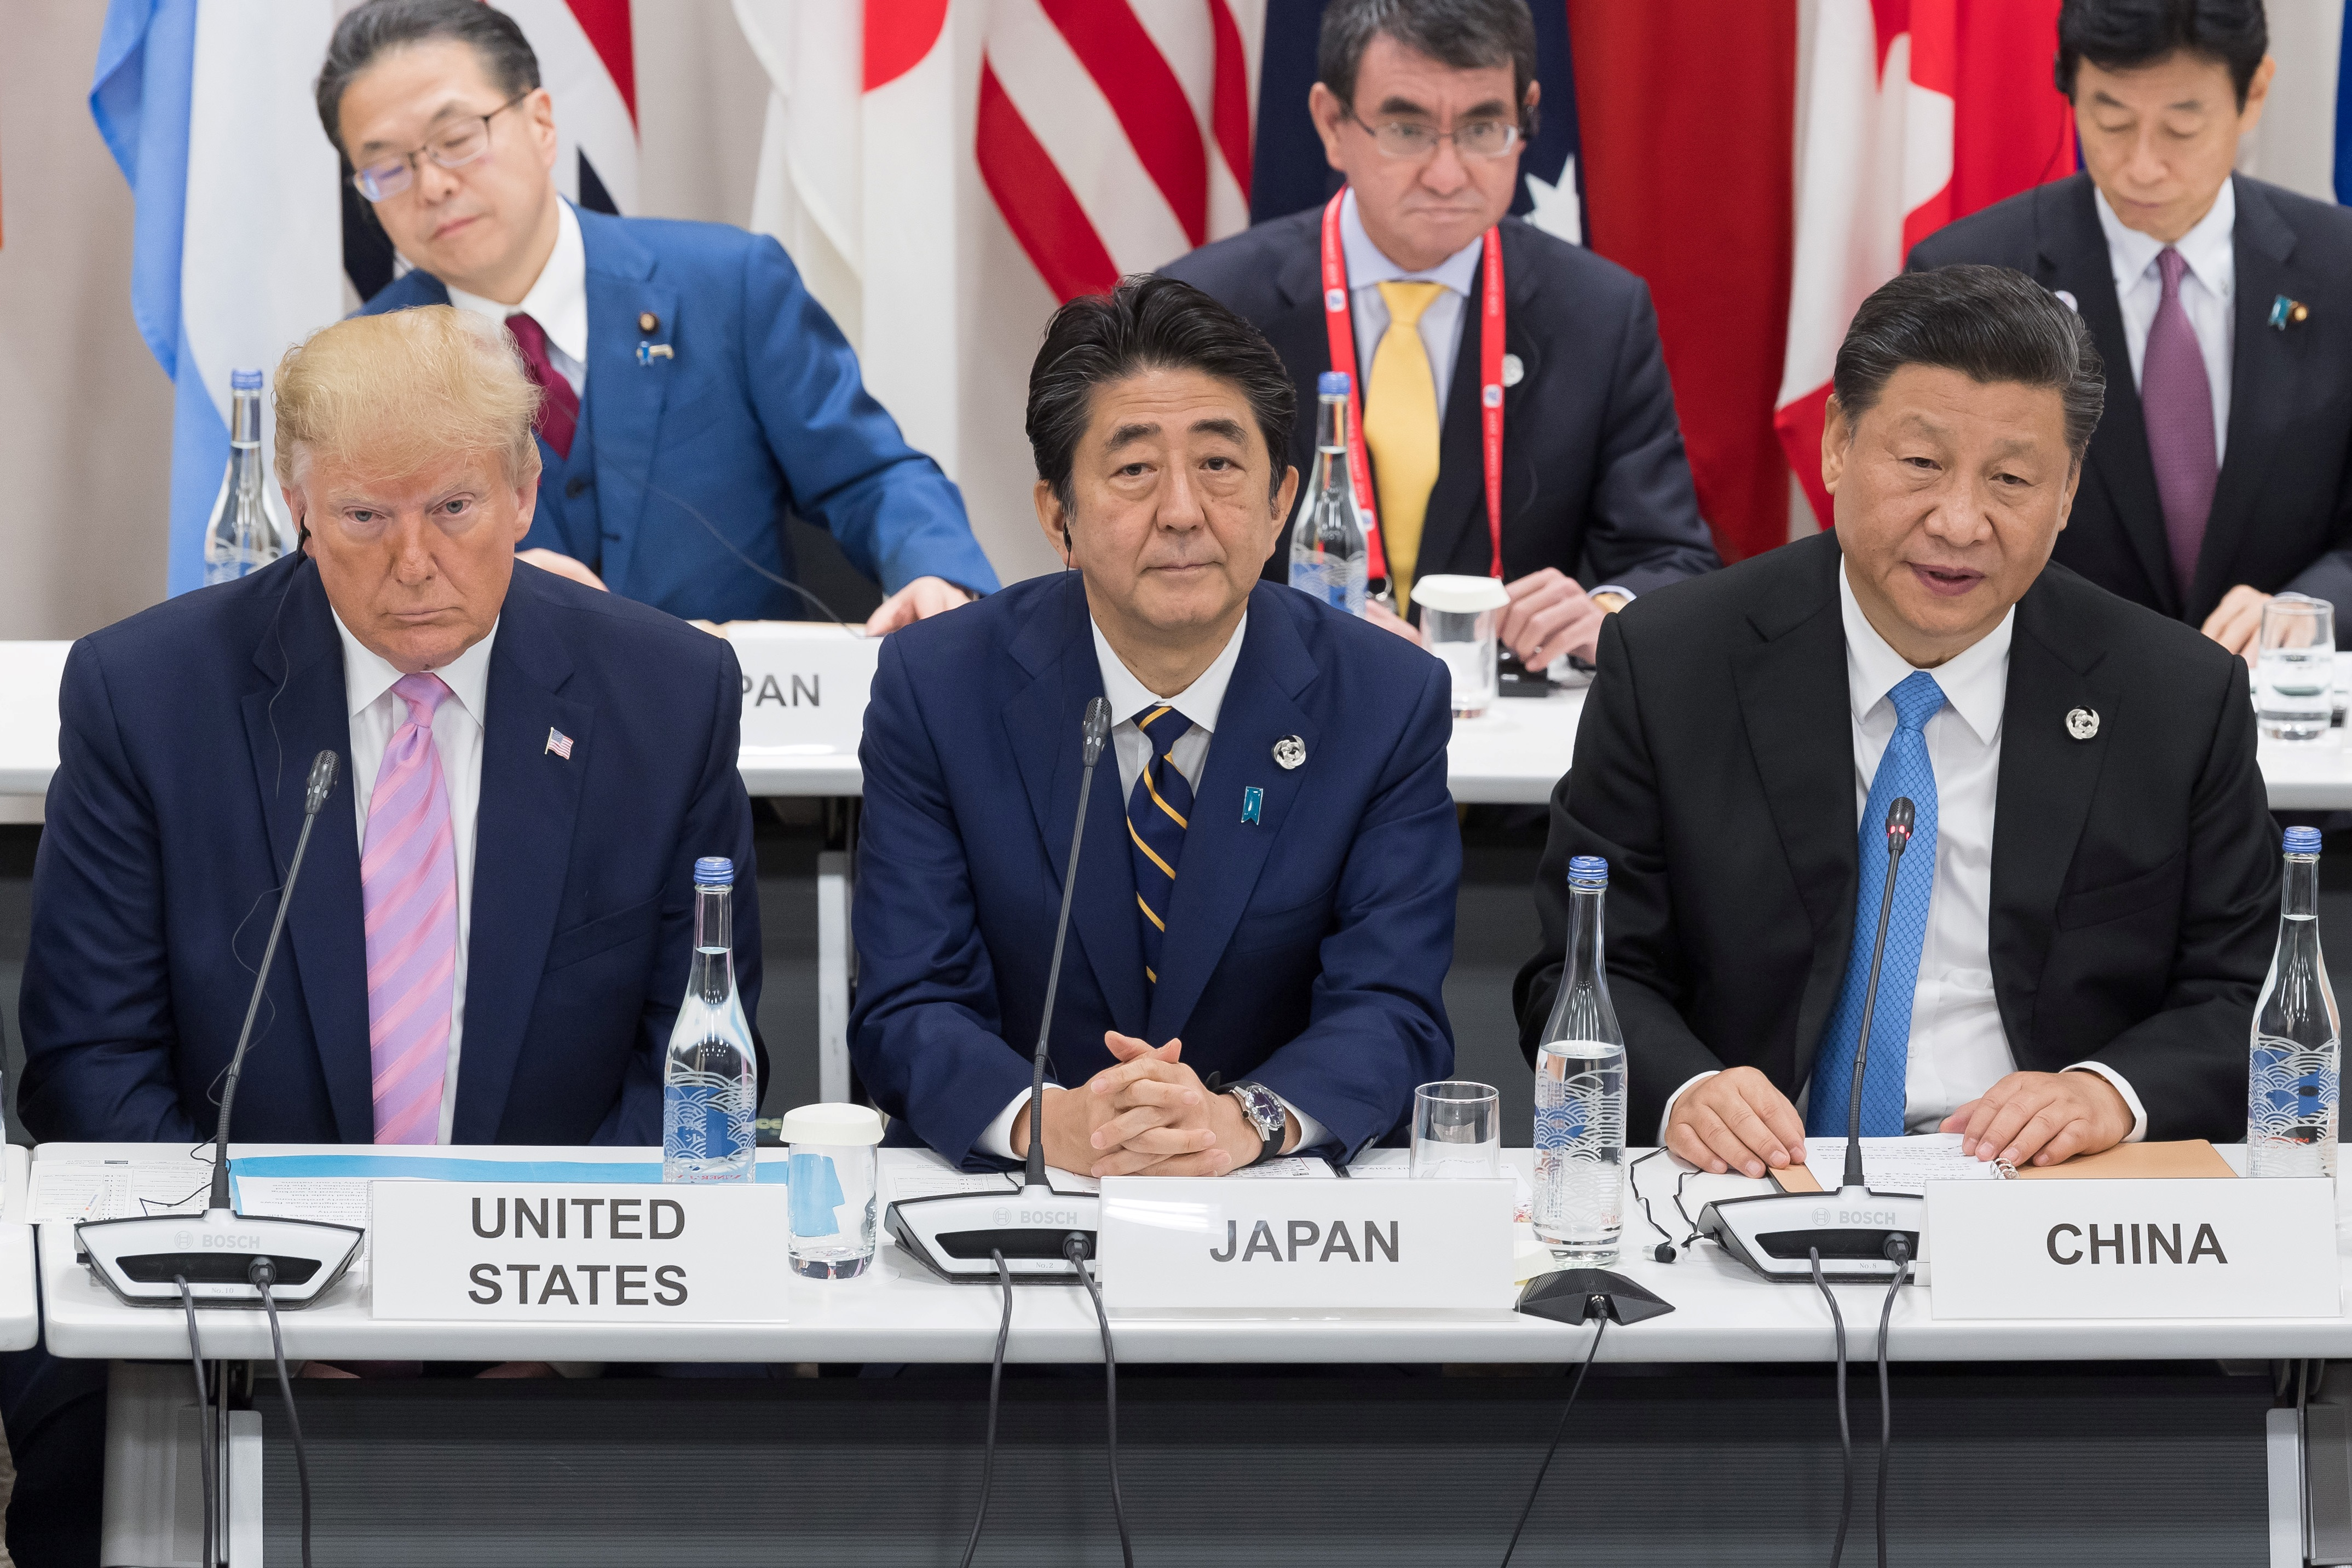 US President Donald Trump (L) sits with Japan's Prime Minister Shinzo Abe (C) and China's President Xi Jinping as they attend a meeting on the digital economy at the G20 Summit in Osaka on June 28, 2019. (JACQUES WITT/AFP via Getty Images)